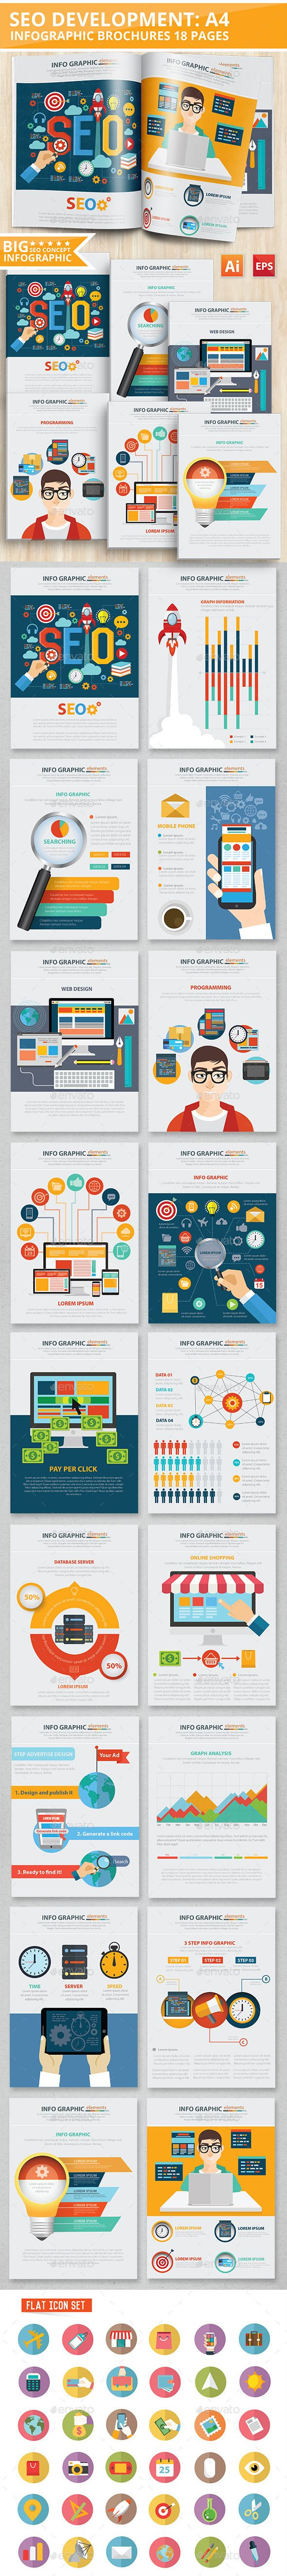 SEO Development Infographic Design 18 Pages Template Vector EPS, AI #design Download: http://graphicriver.net/item/seo-development-infographic-design-18-pages/12592065?ref=ksioks